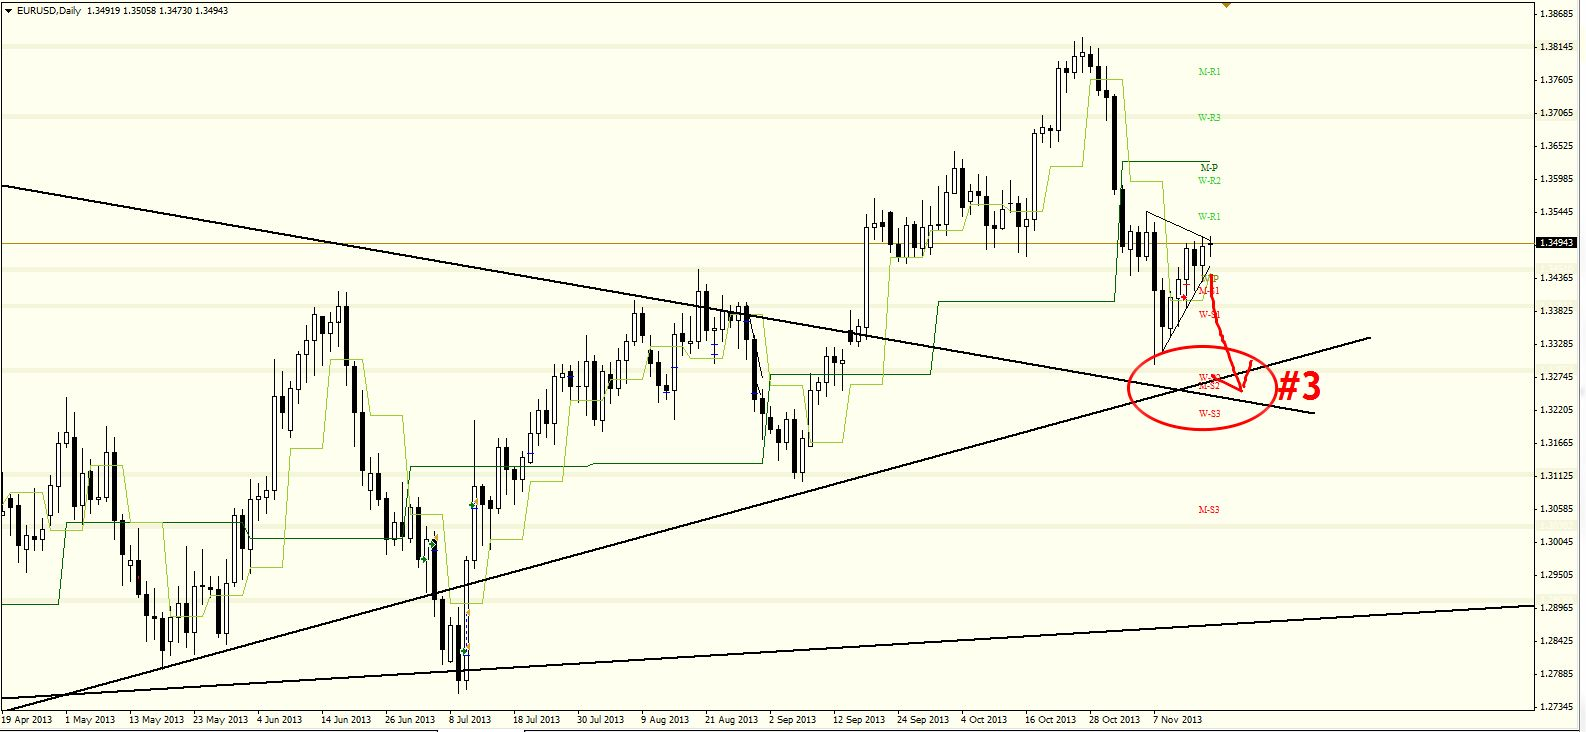 an analysis of bringing up the pips Forex forecasting basic forex forecast methods: technical analysis and fundamental analysis this article provides insight into the two major methods of analysis used to forecast the behavior of the forex market technical analysis and fundamental analysis differ greatly, but both can be useful forecast tools for the forex trader.